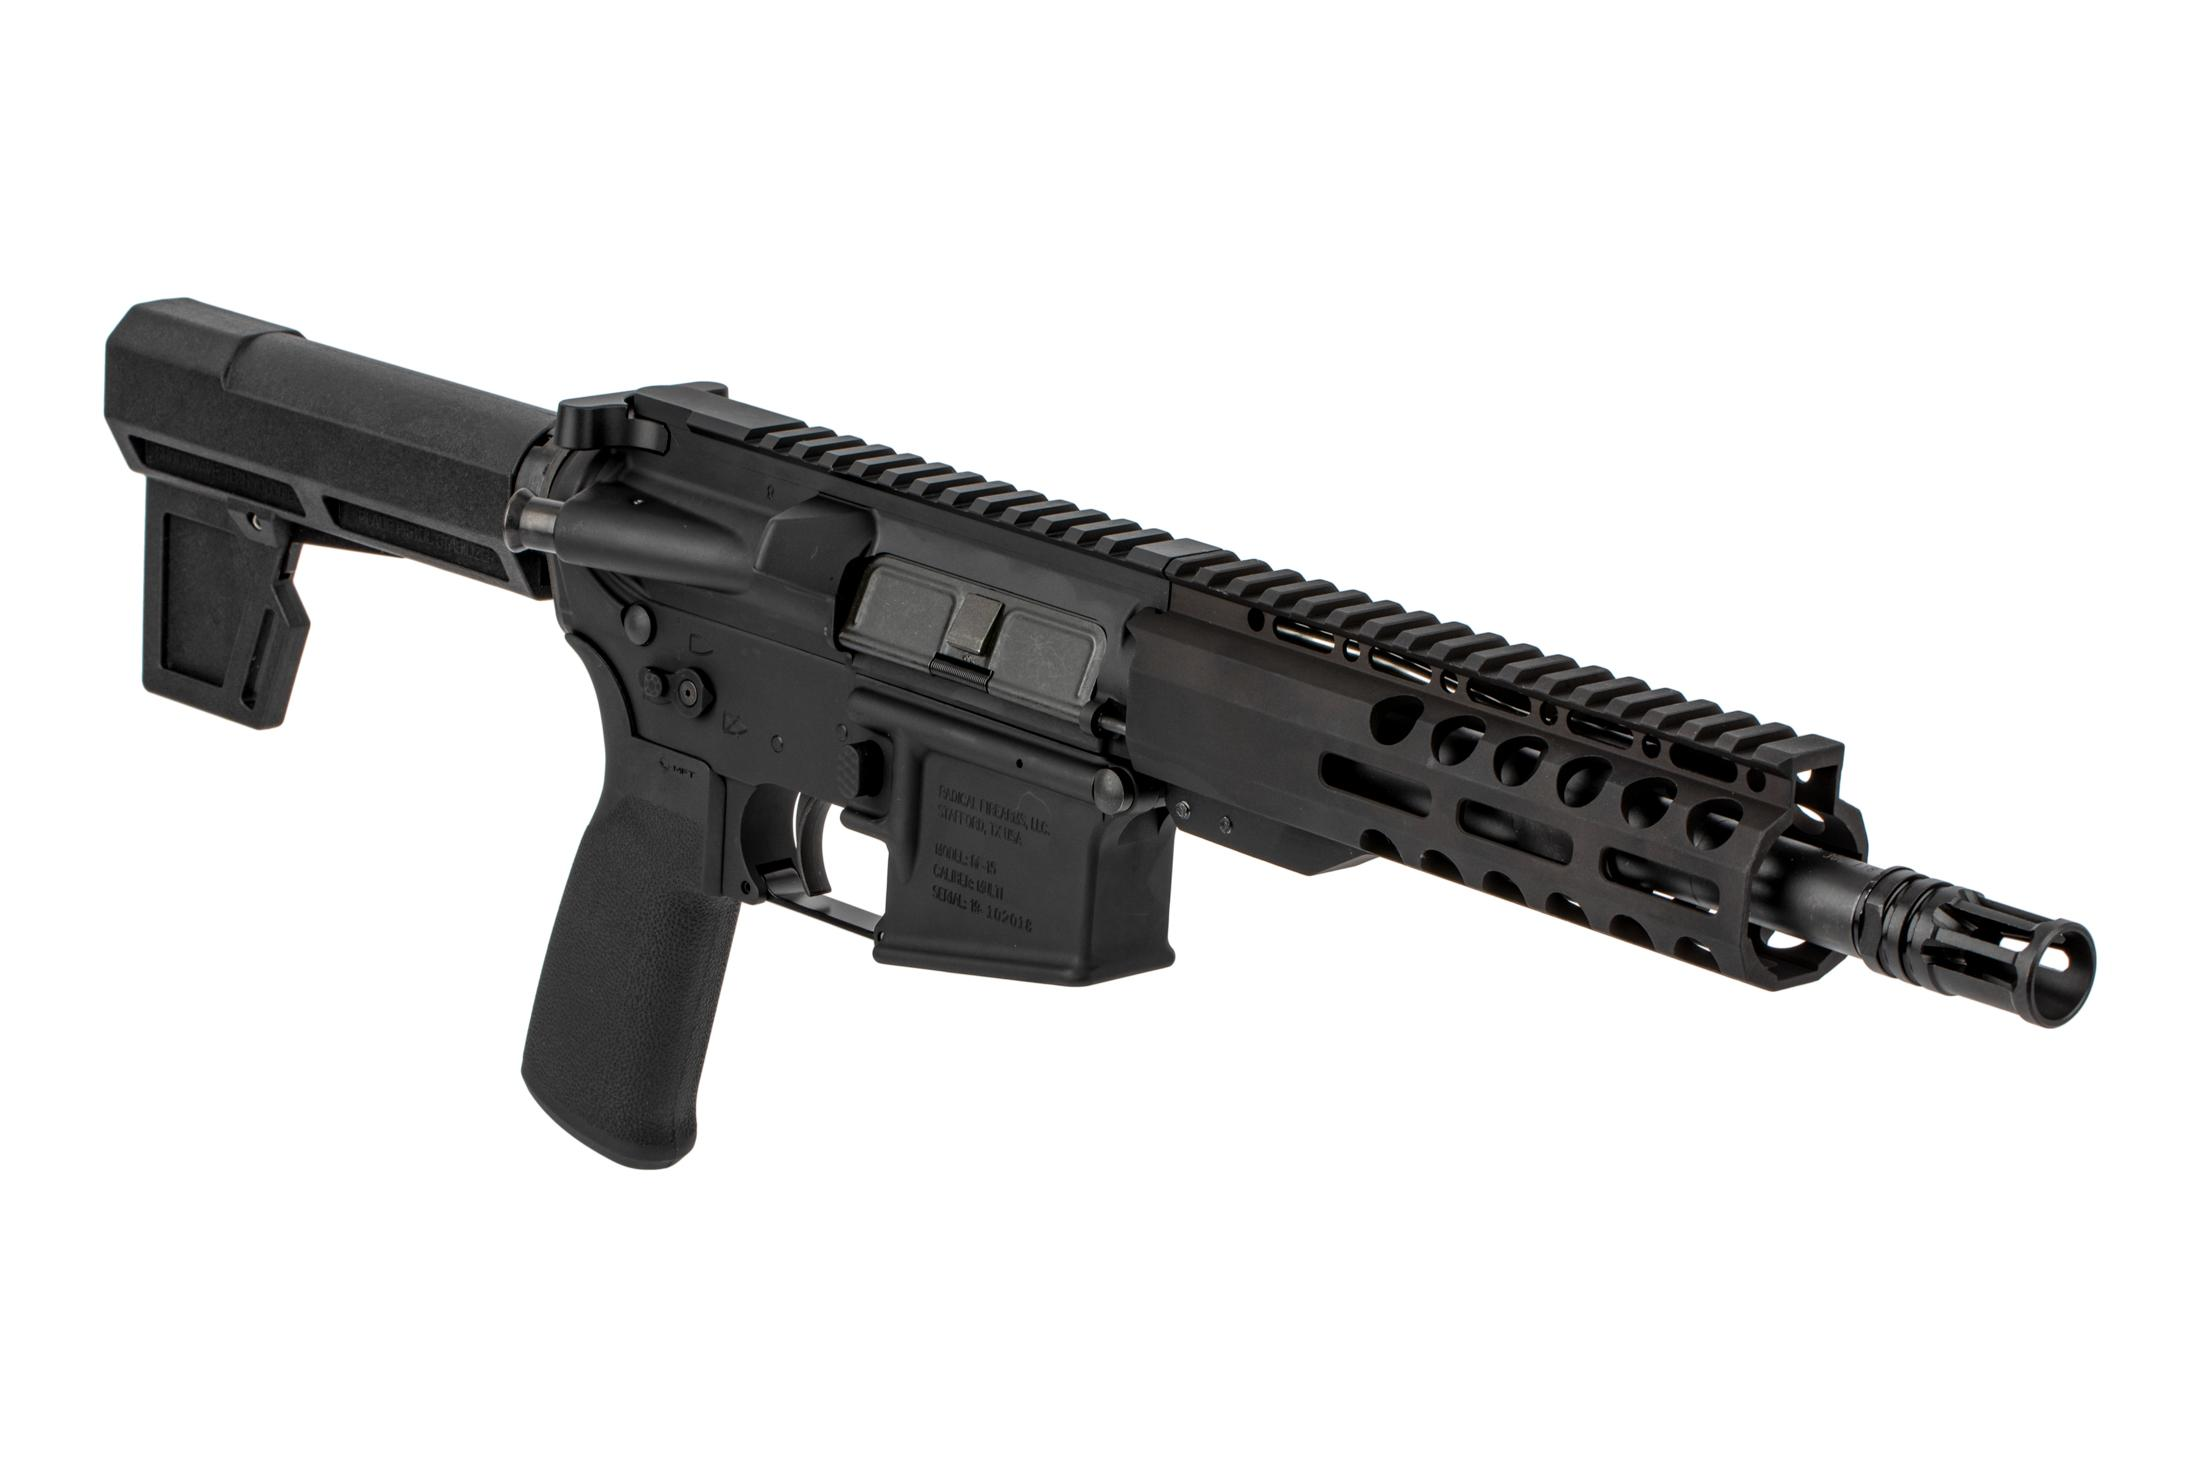 The Radical Firearms .300 BLK AR Pistol comes with the Shockwave Technologies 2M Blade stabilizer